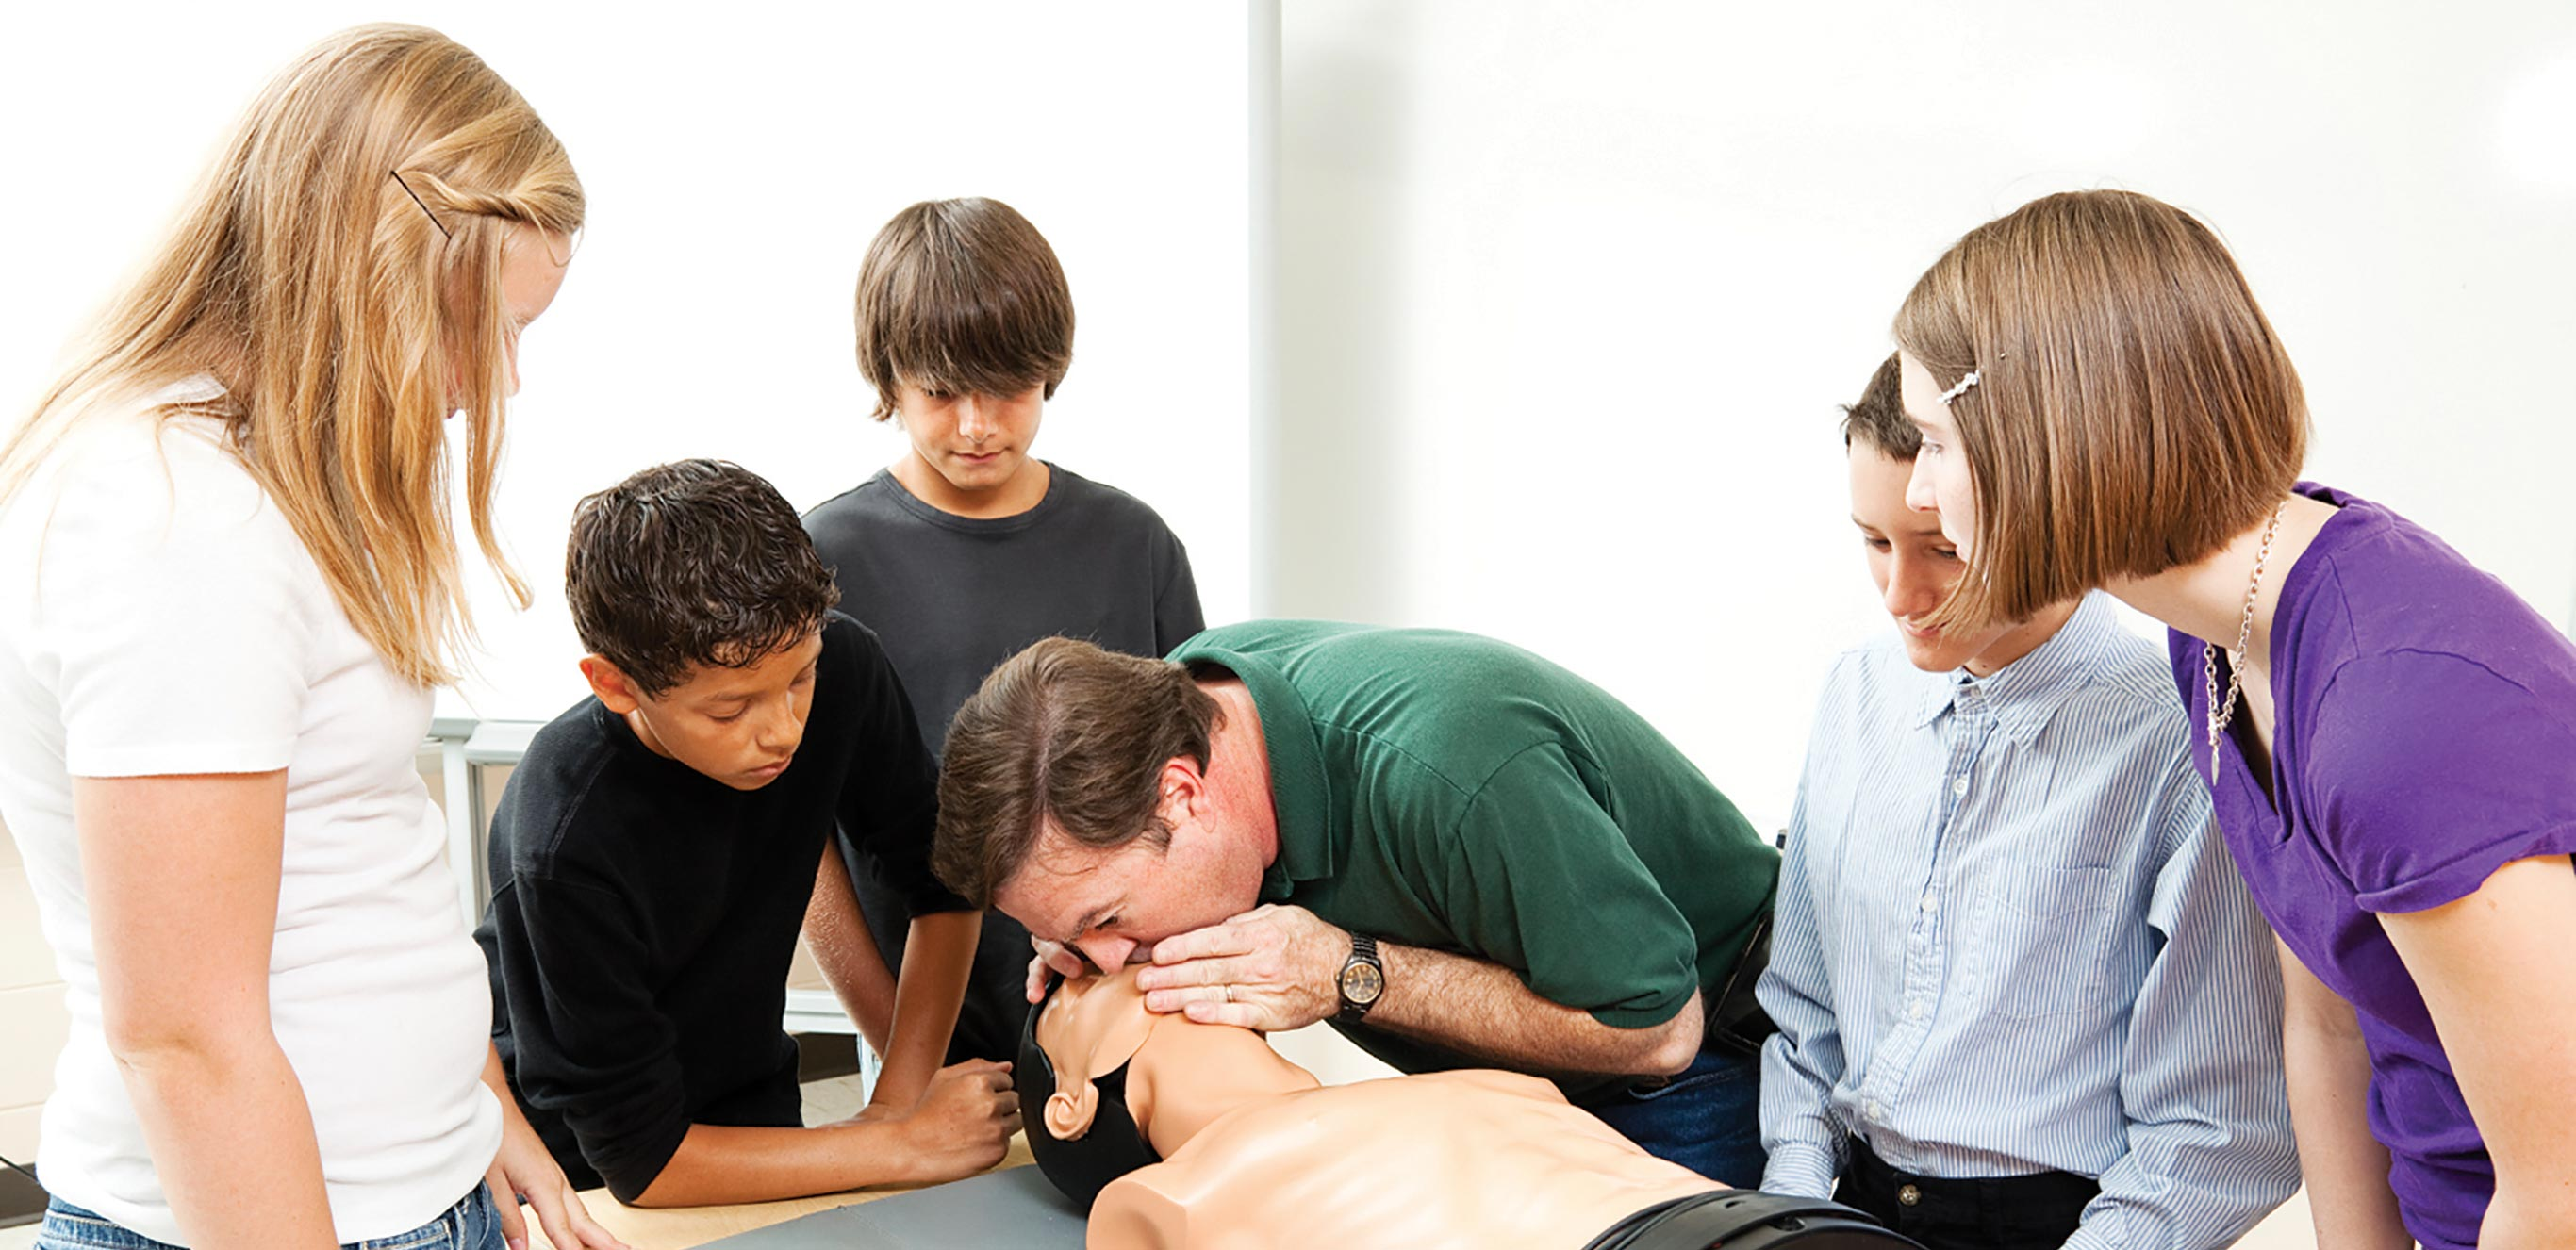 Pediatric Advanced Life Support (PALS) Certification